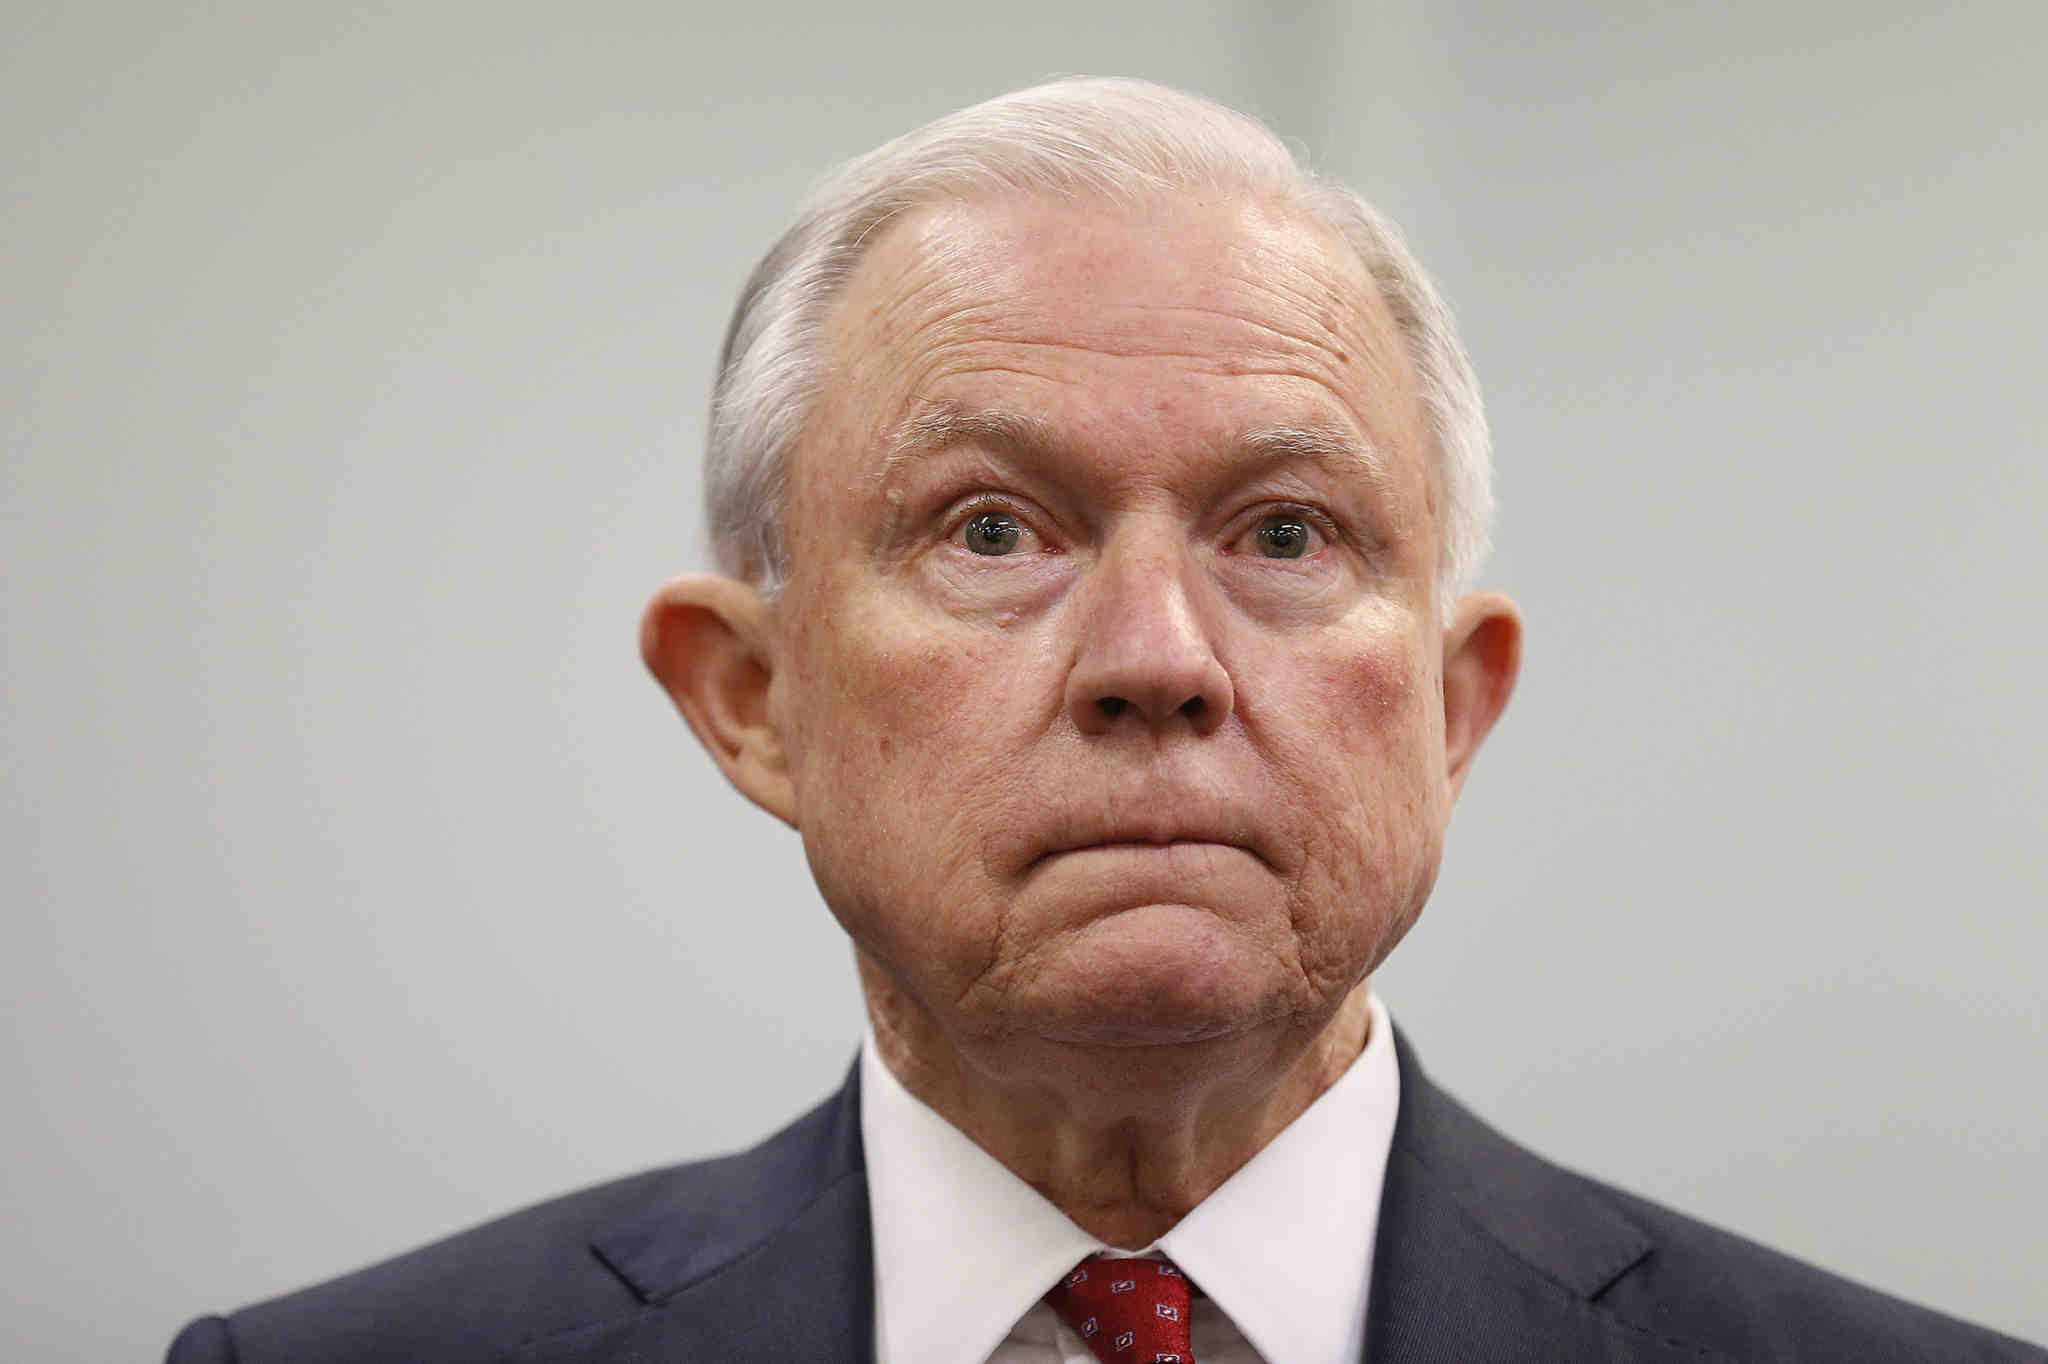 Attorney General Jeff Sessions waits to speak at the U.S. Attorney´s office in Philadelphia, PA on July 21, 2017.